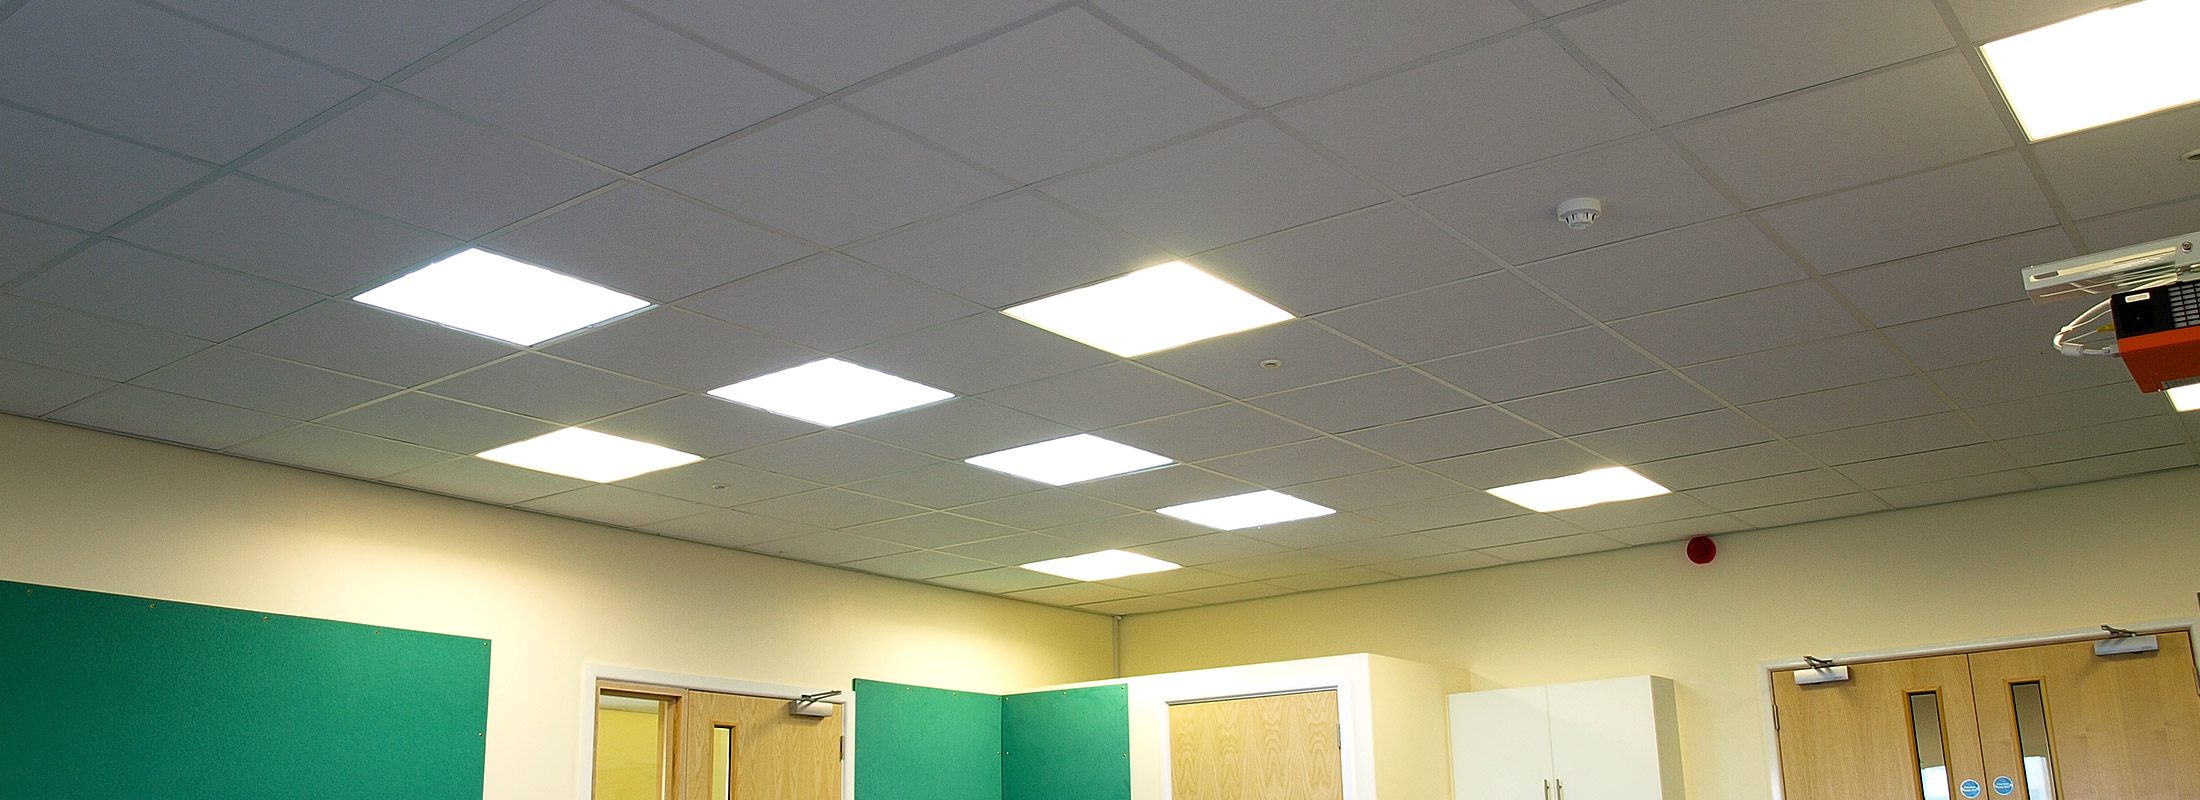 ASC | Suspended Ceilings-Partitioning-Suppliers-Installers-Suffolk